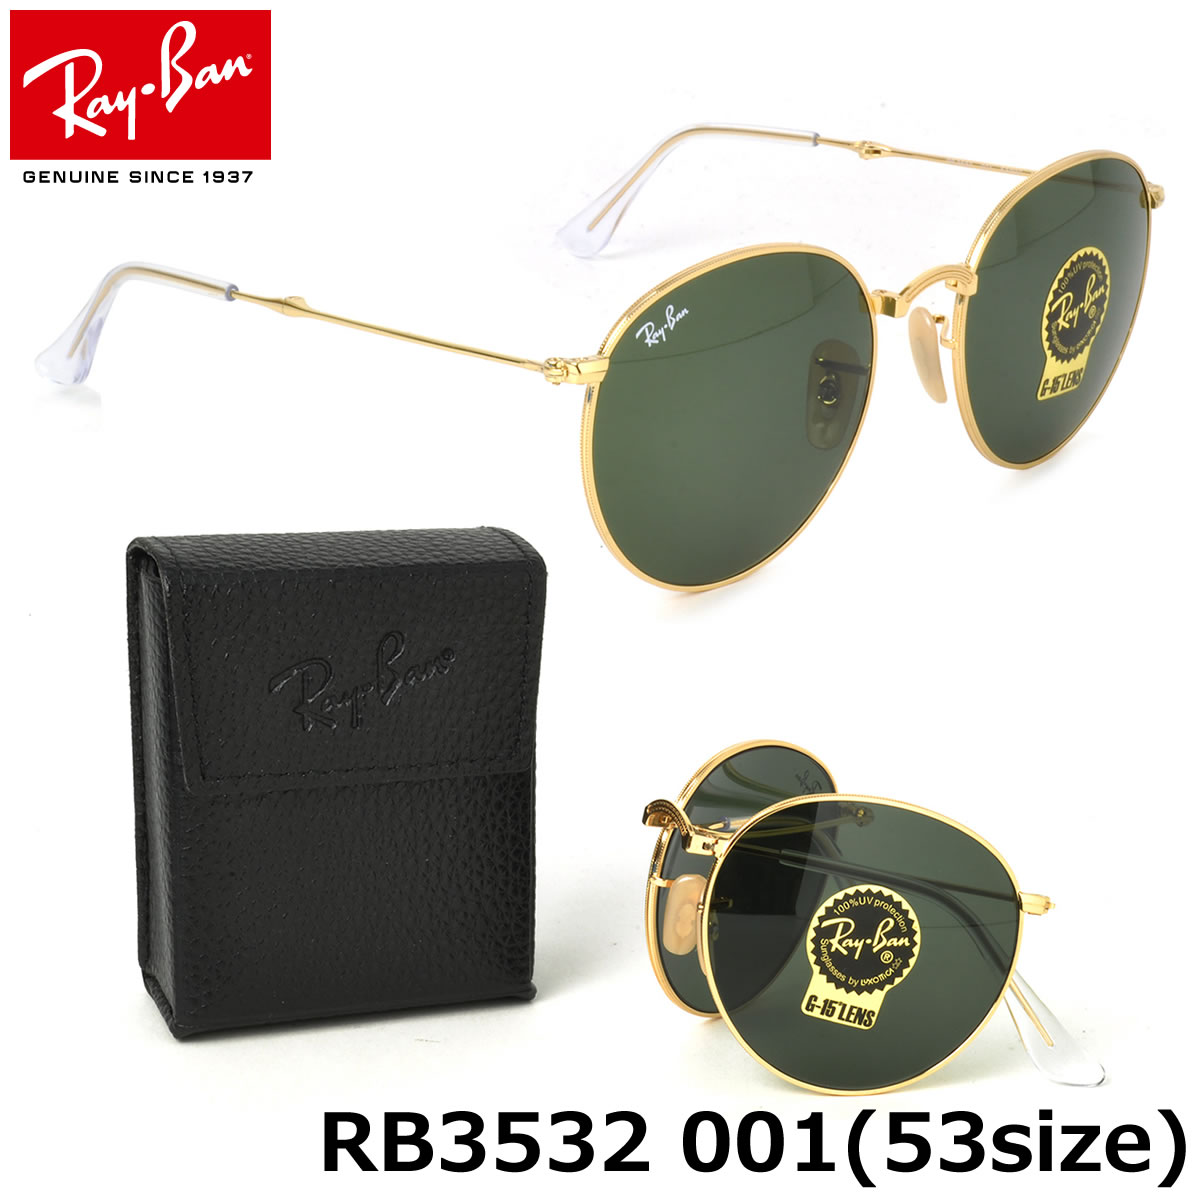 94d1b97ec2 Optical Shop Thats  Ray-Ban Sunglasses RB3532 001 53size ROUND METAL ...